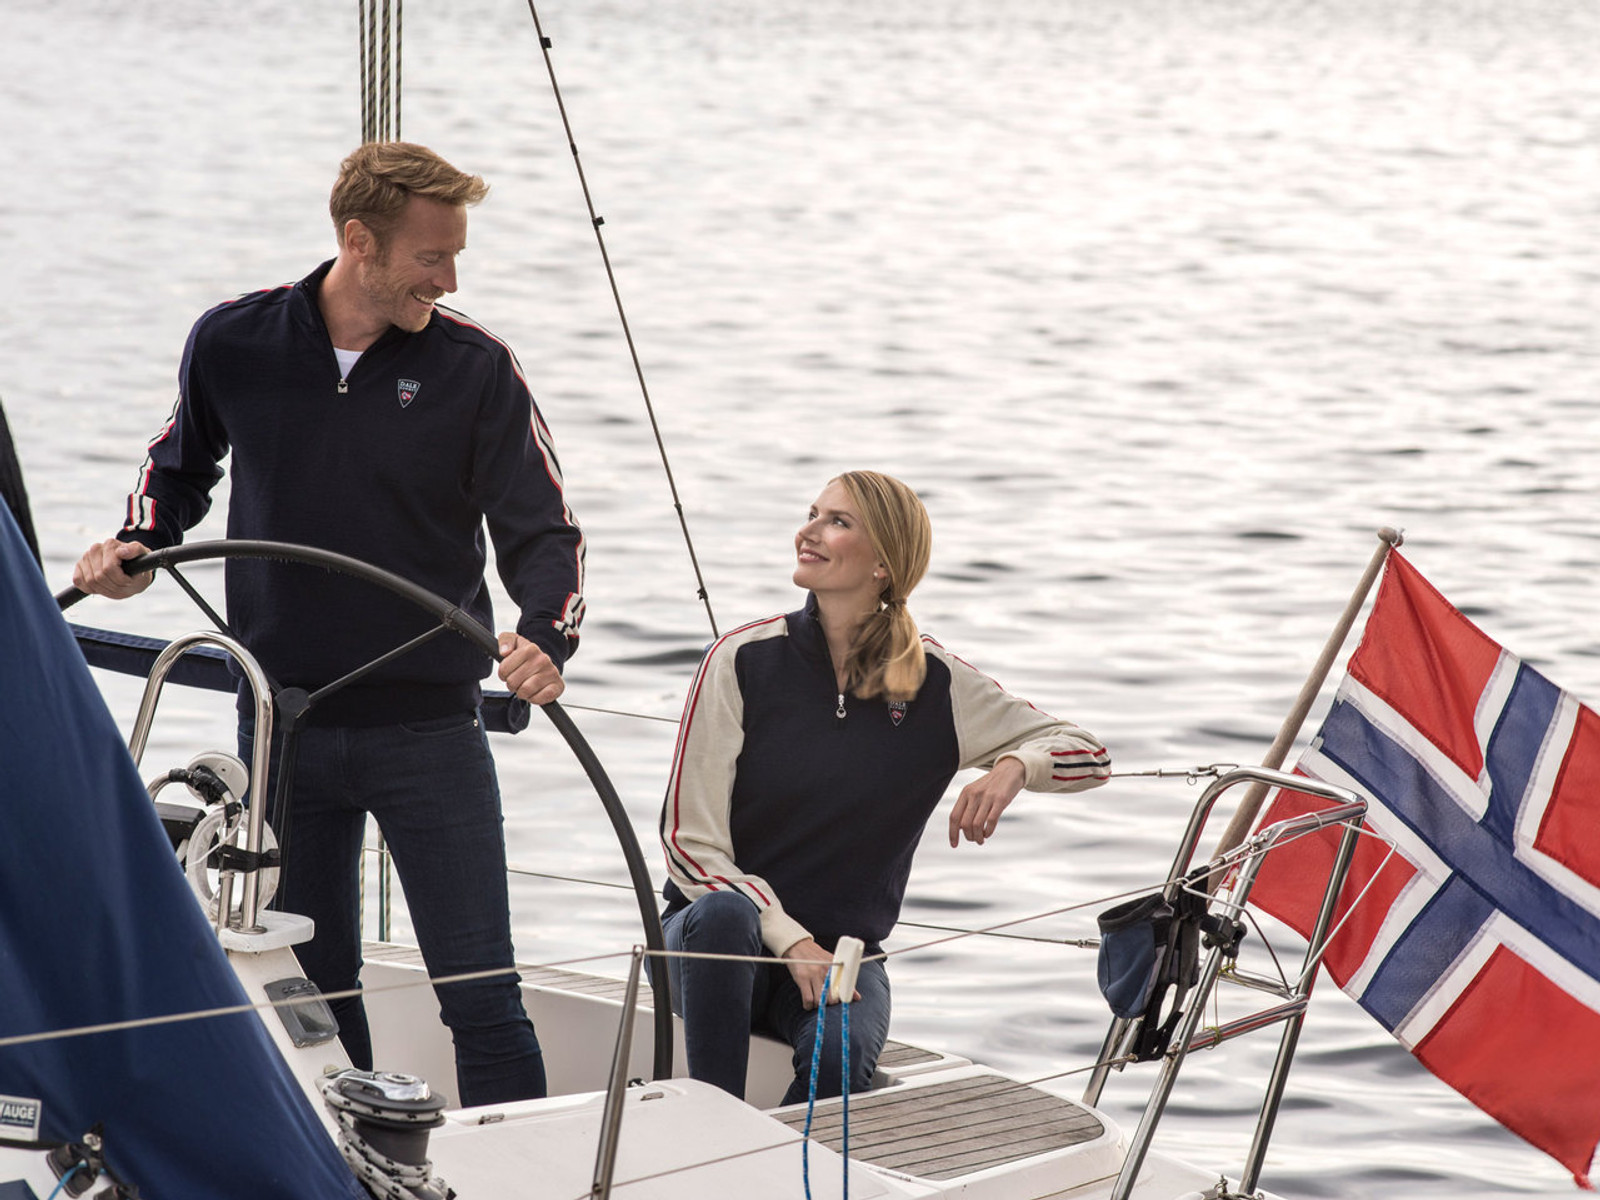 Man and woman sailing wearing Dale of Norway's mens and ladies Flagg sweater in Navy/Raspberry/Off White, 92961-C, and Navy/Off White/Raspberry, 92951